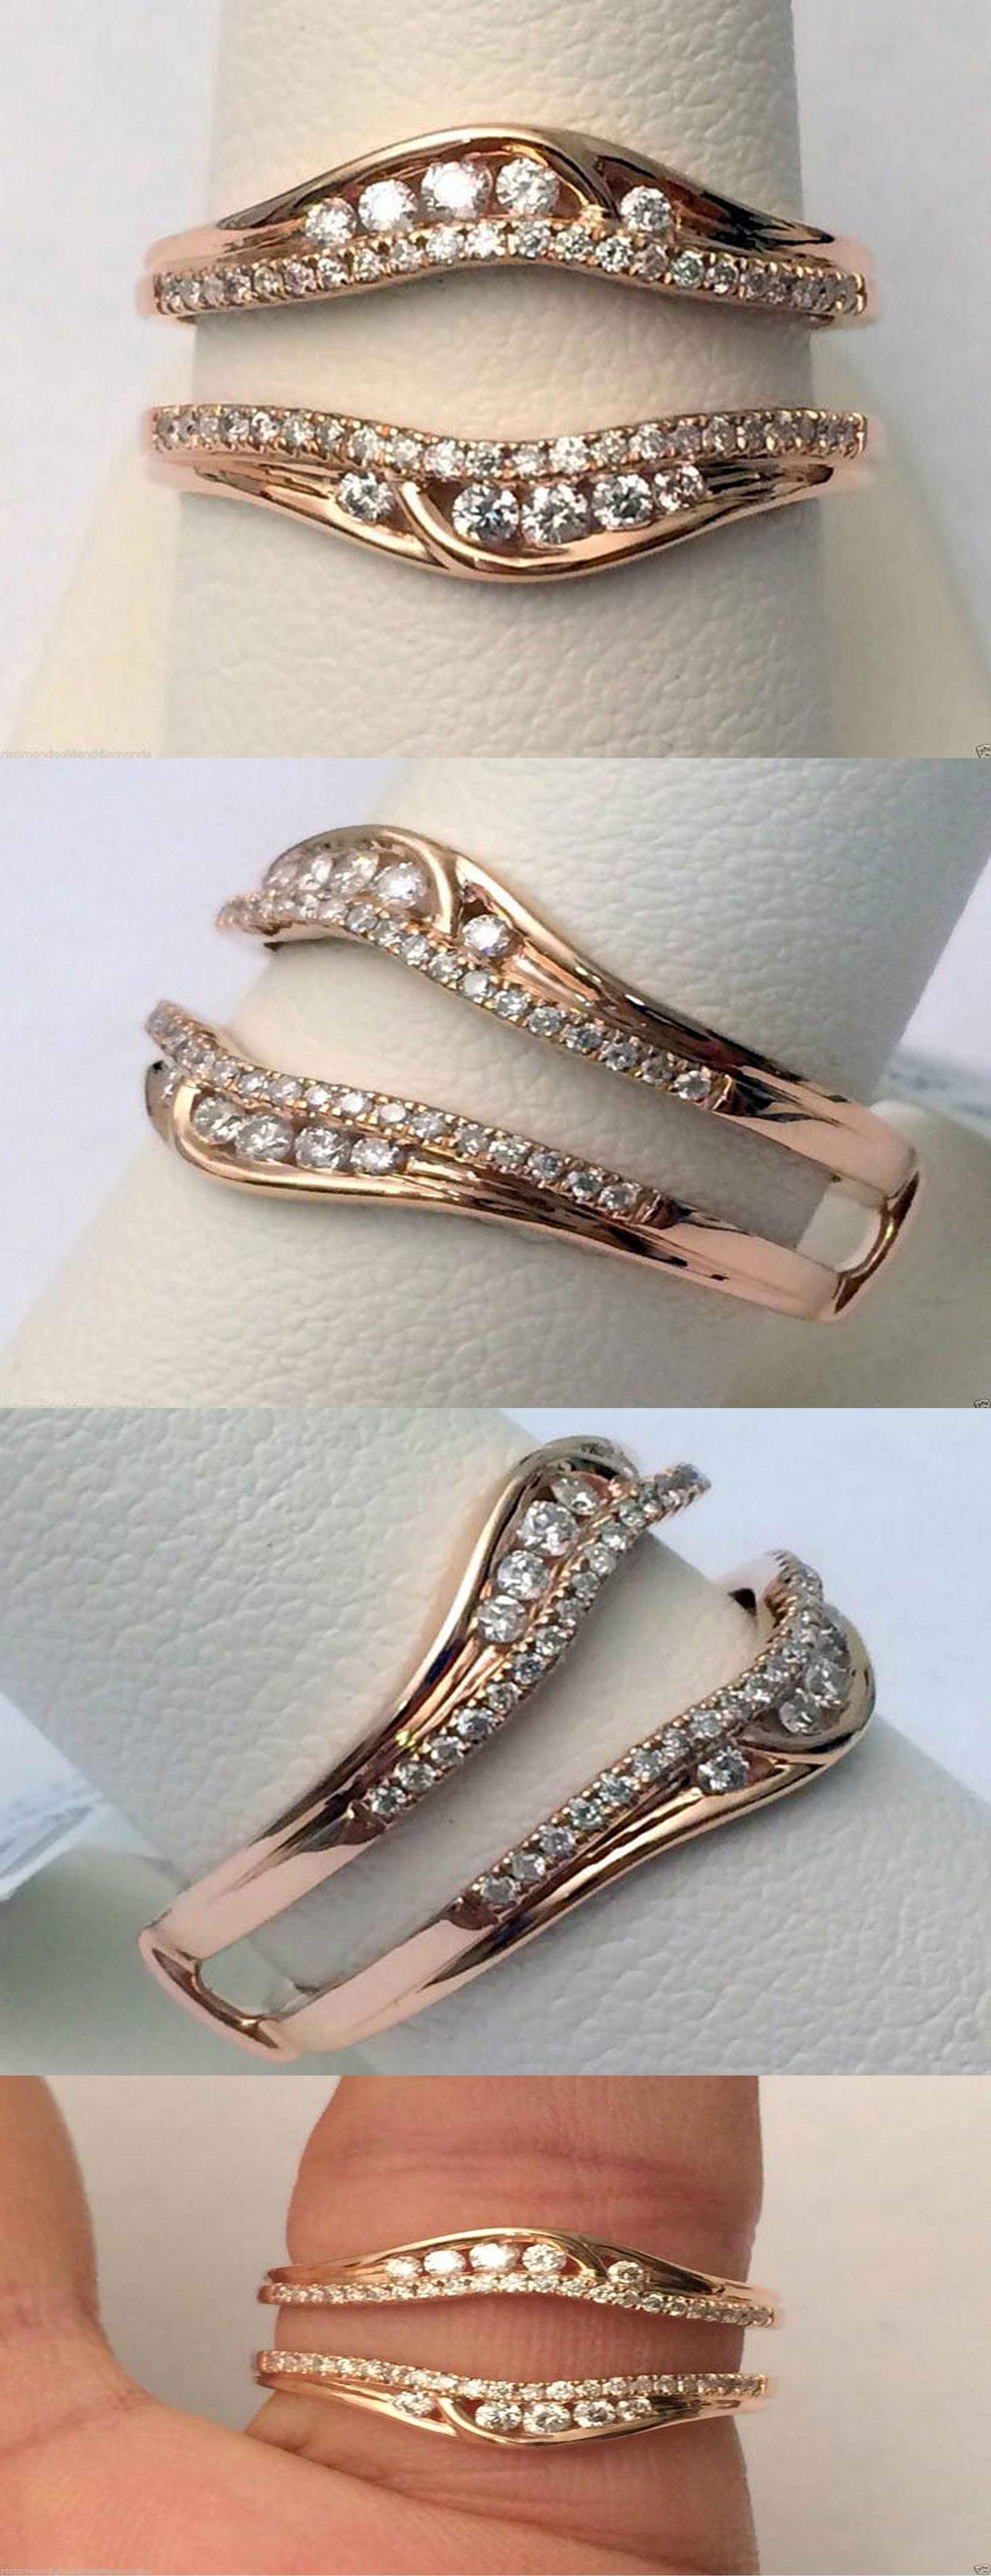 14kt Rose Gold Solitaire Enhancer Round Diamonds Ring